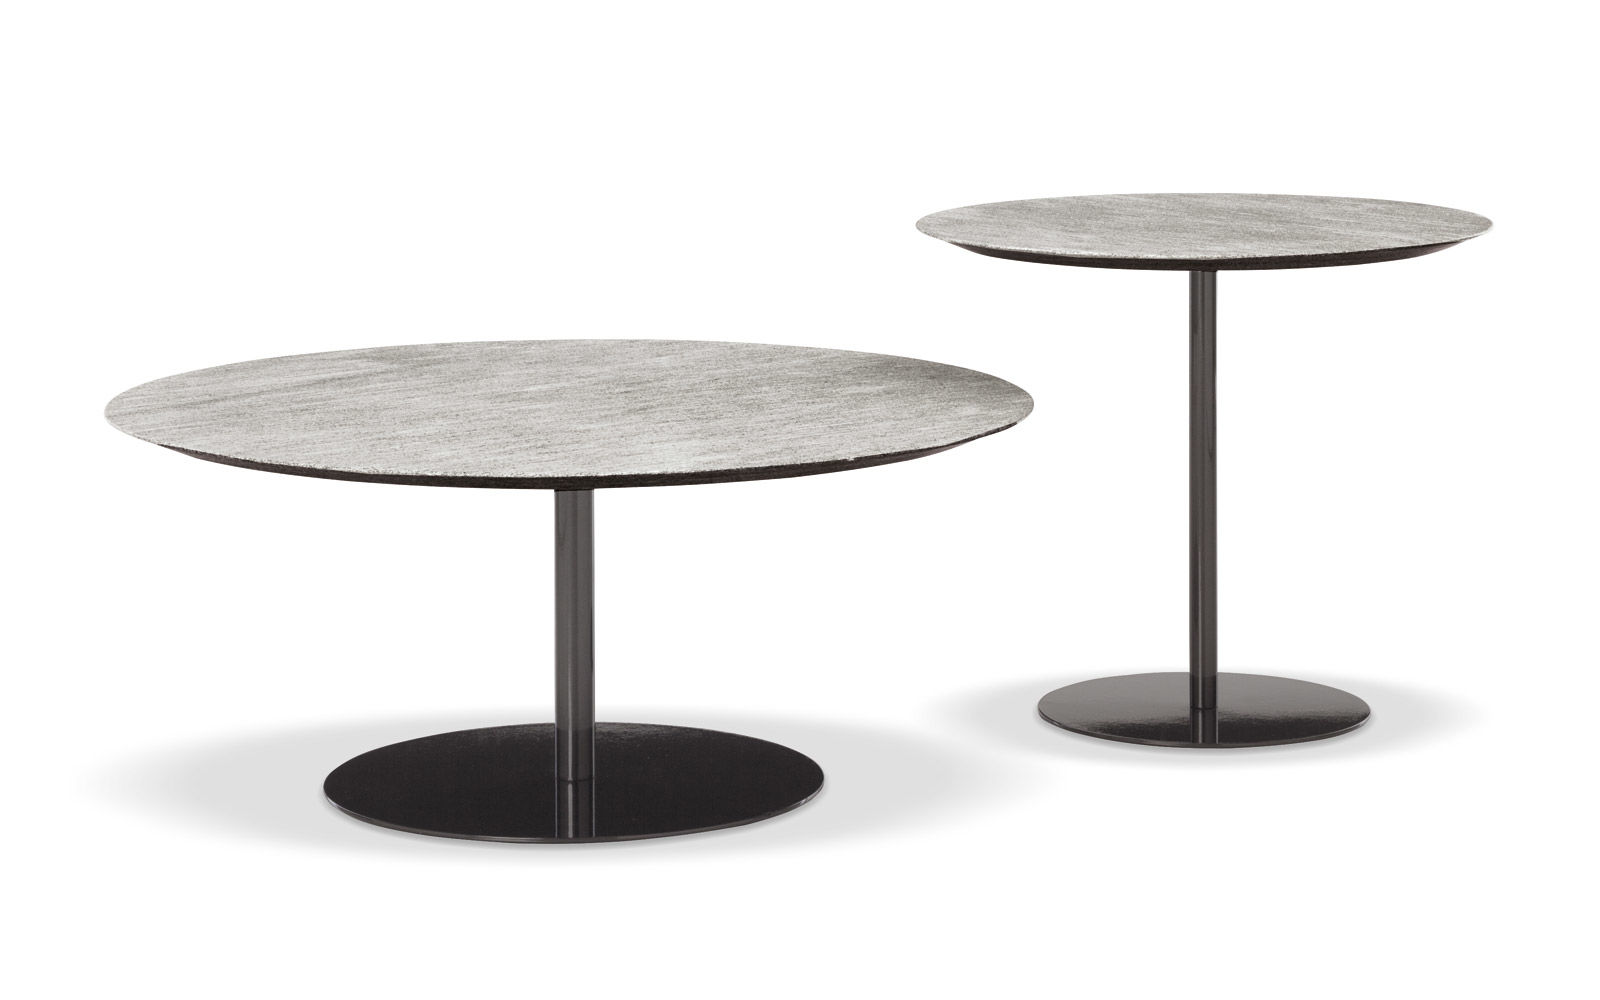 100 Tokyo Glass Coffee Table Tokyo Rectangle  : 14220zBELLAGIO OUTDOOR SCONT from 45.32.79.15 size 1600 x 1000 jpeg 72kB